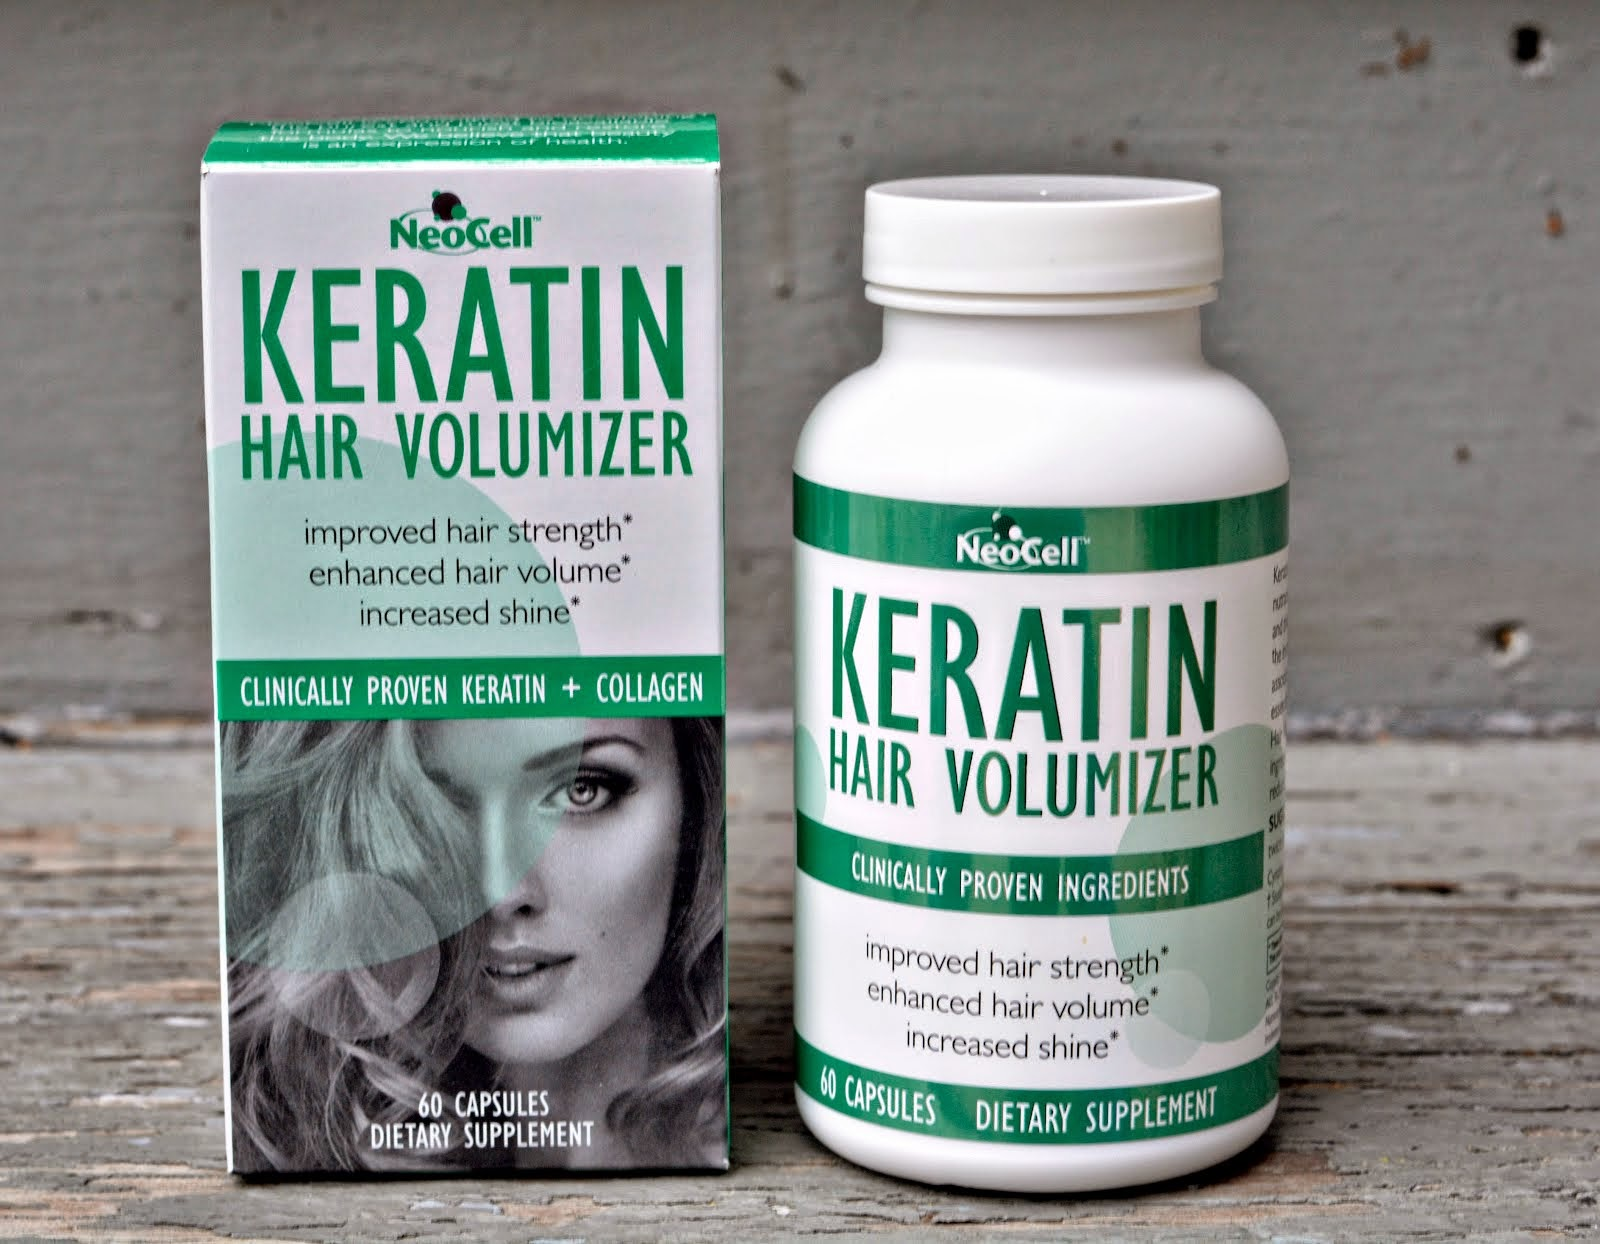 Enter To Win NeoCell Keratin Hair Volumizer!